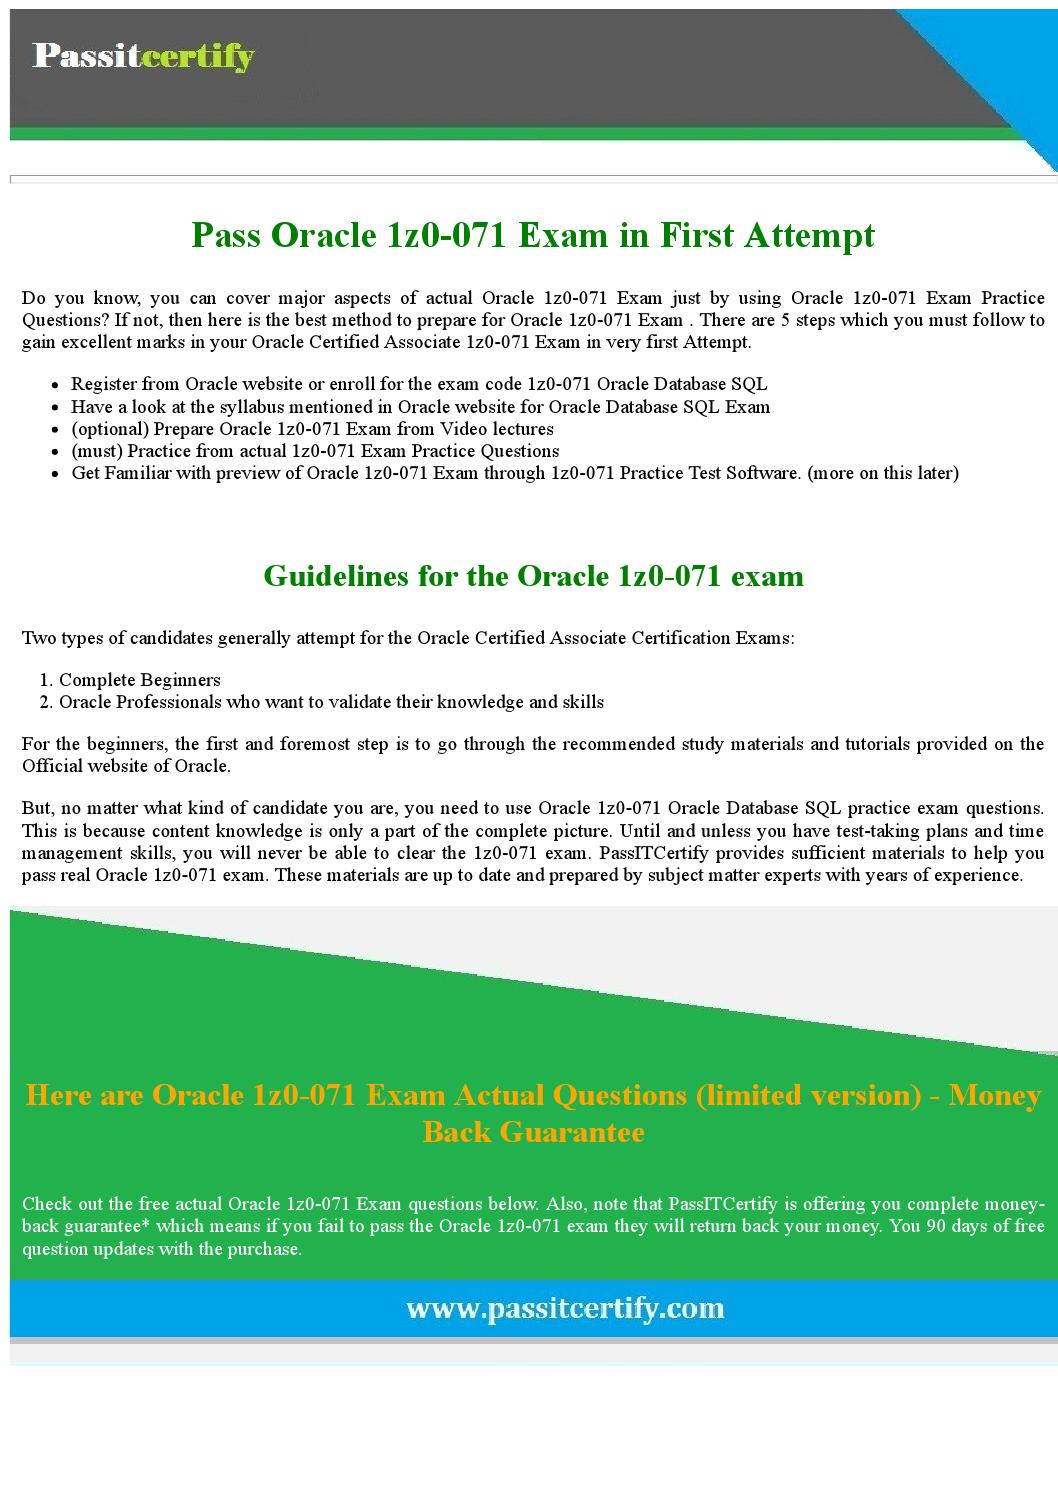 Pass Oracle 1z0-071 Exam in 1st Attempt by Michael J